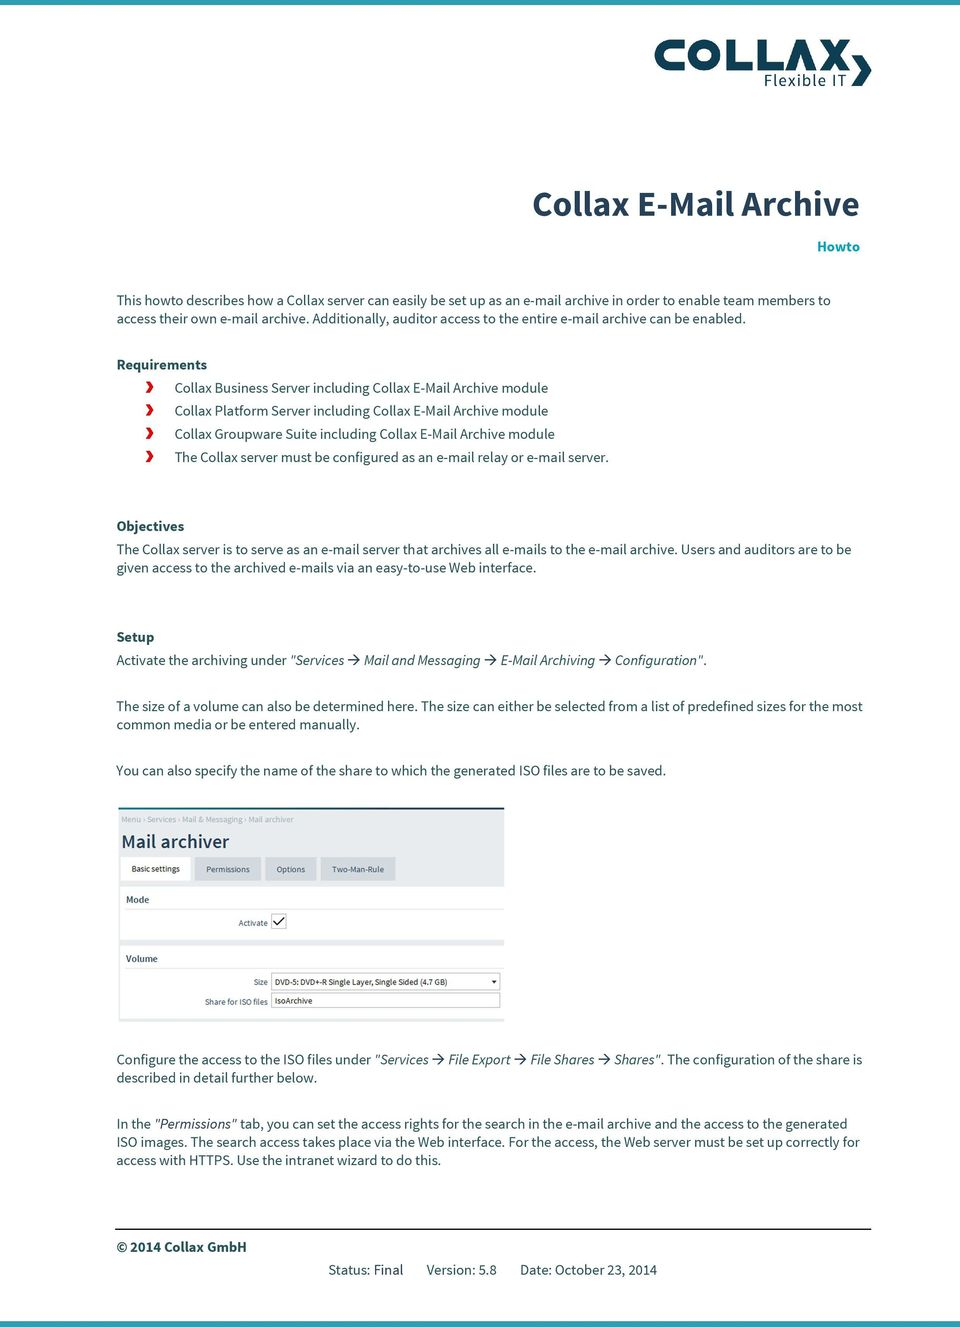 Requirements Collax Business Server including Collax E-Mail Archive module Collax Platform Server including Collax E-Mail Archive module Collax Groupware Suite including Collax E-Mail Archive module